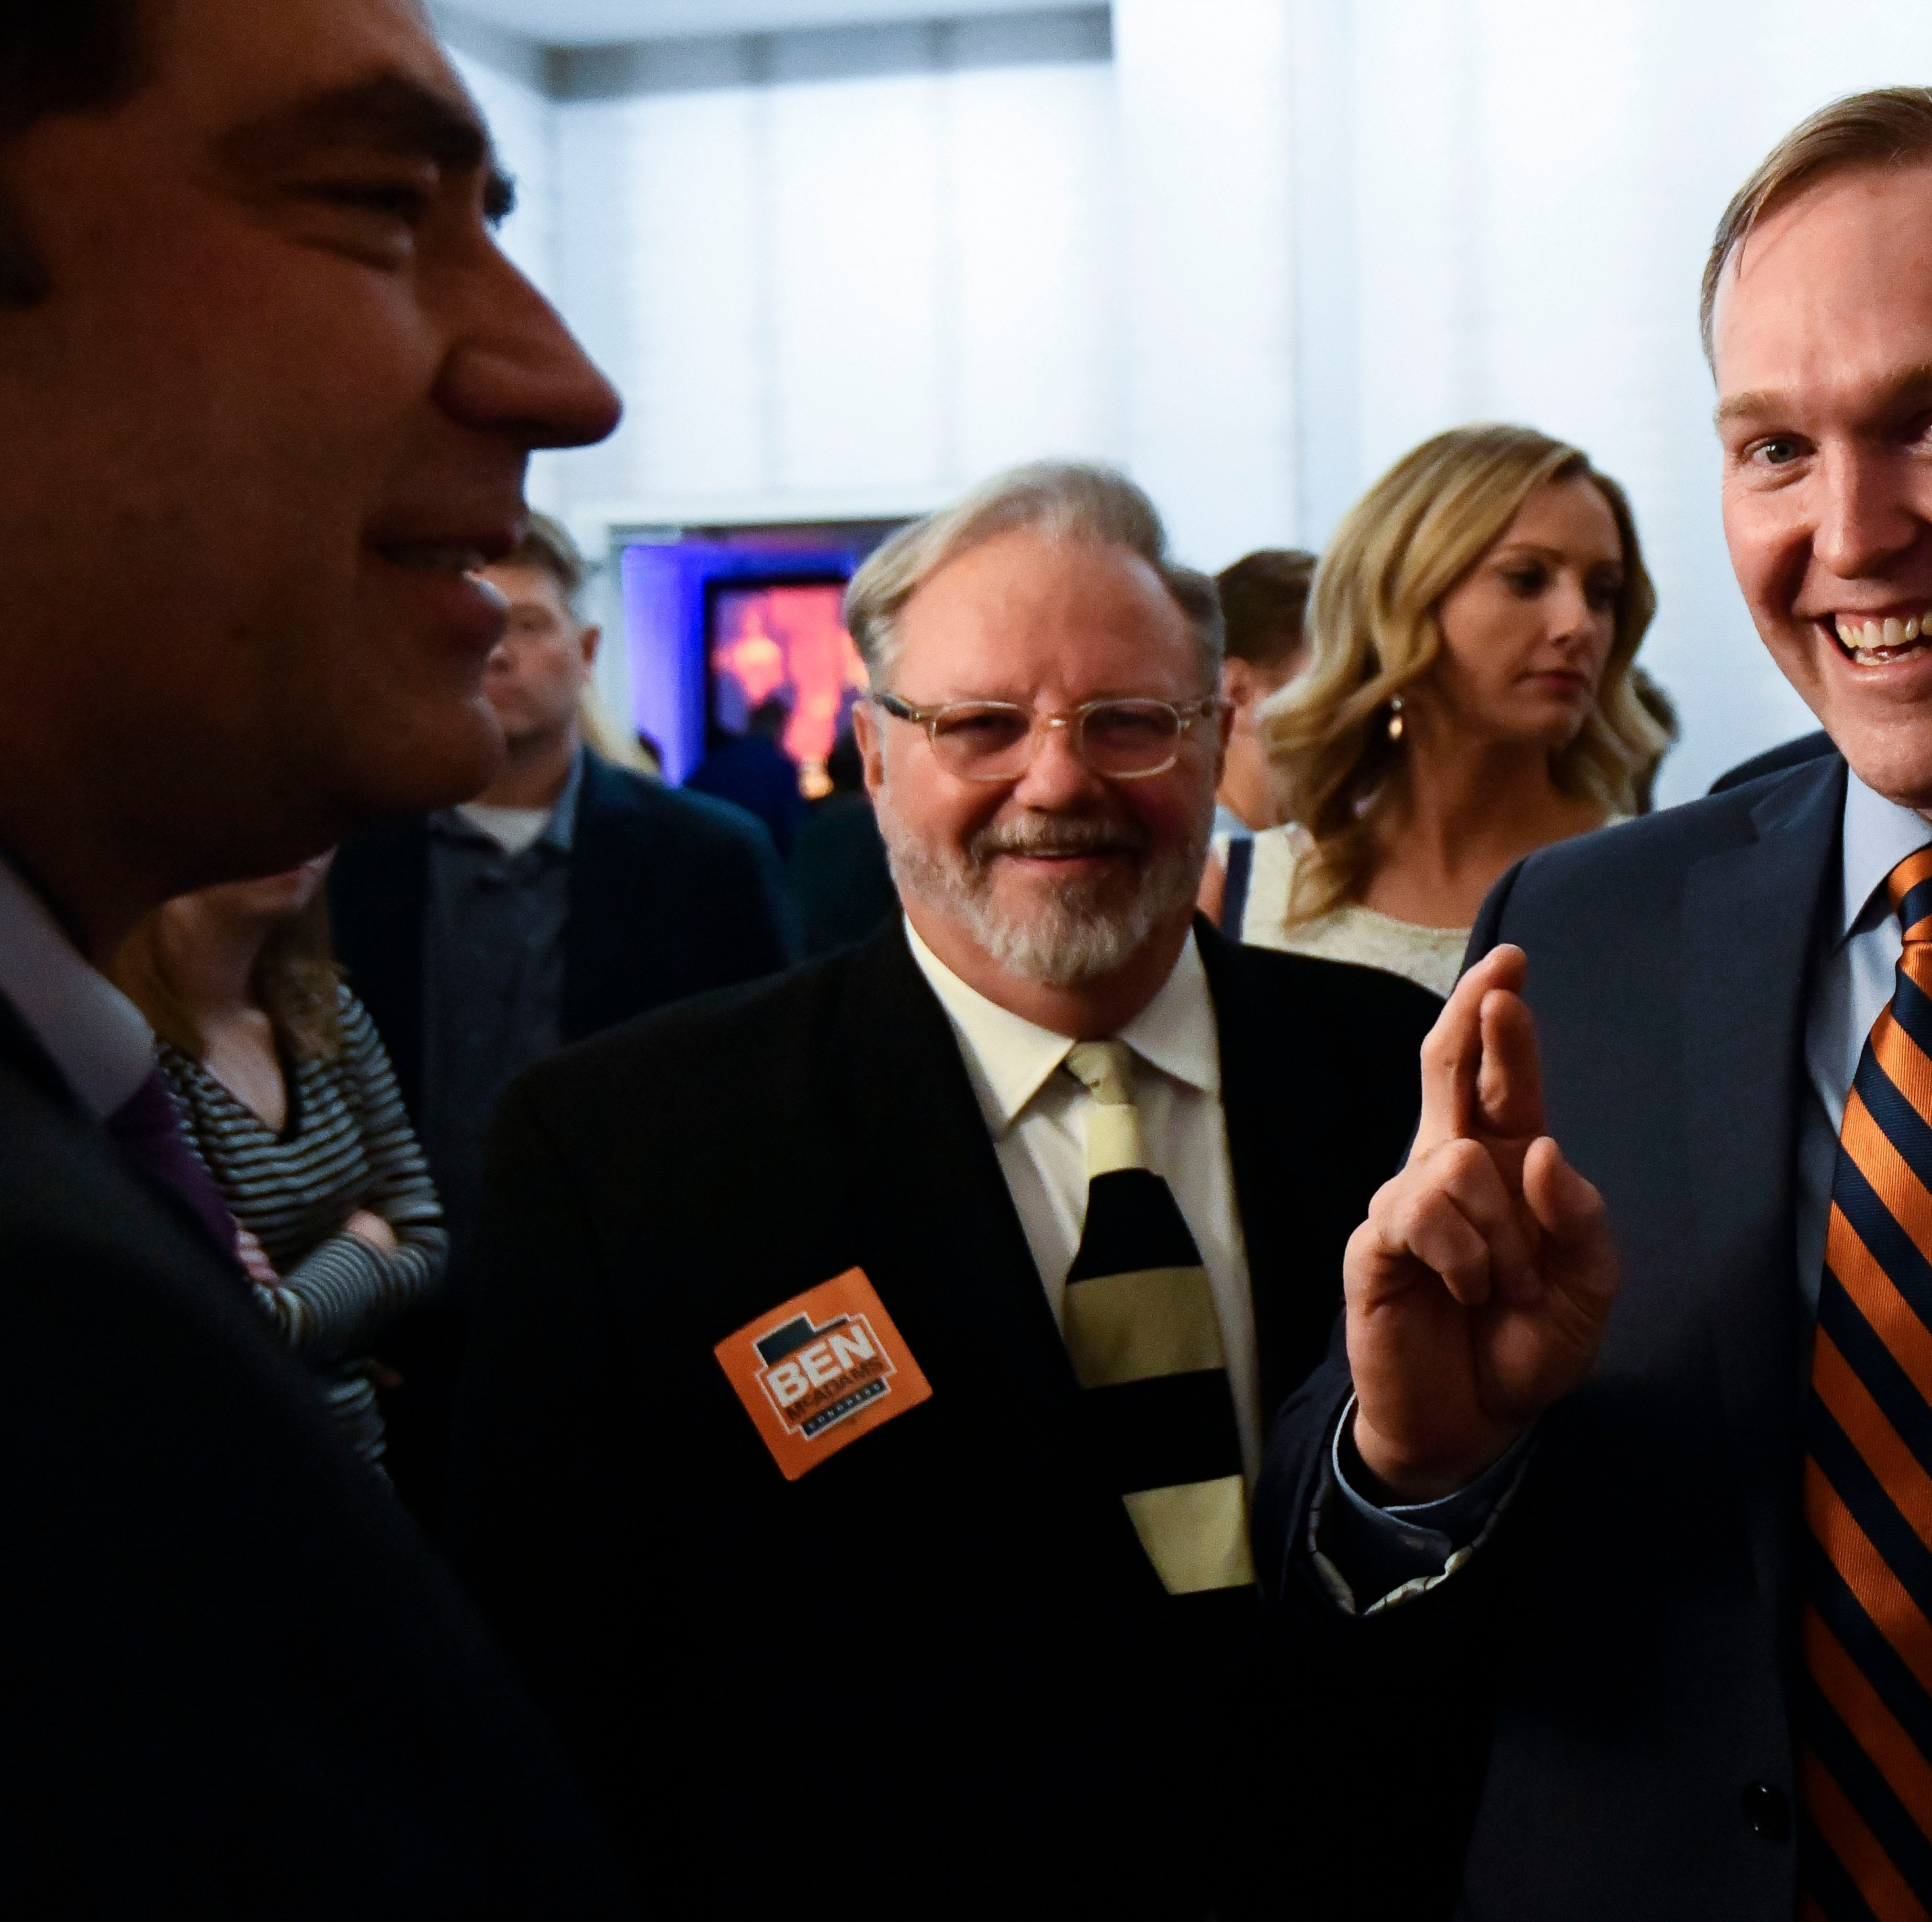 The Latest: Love-McAdams race remains too close to call